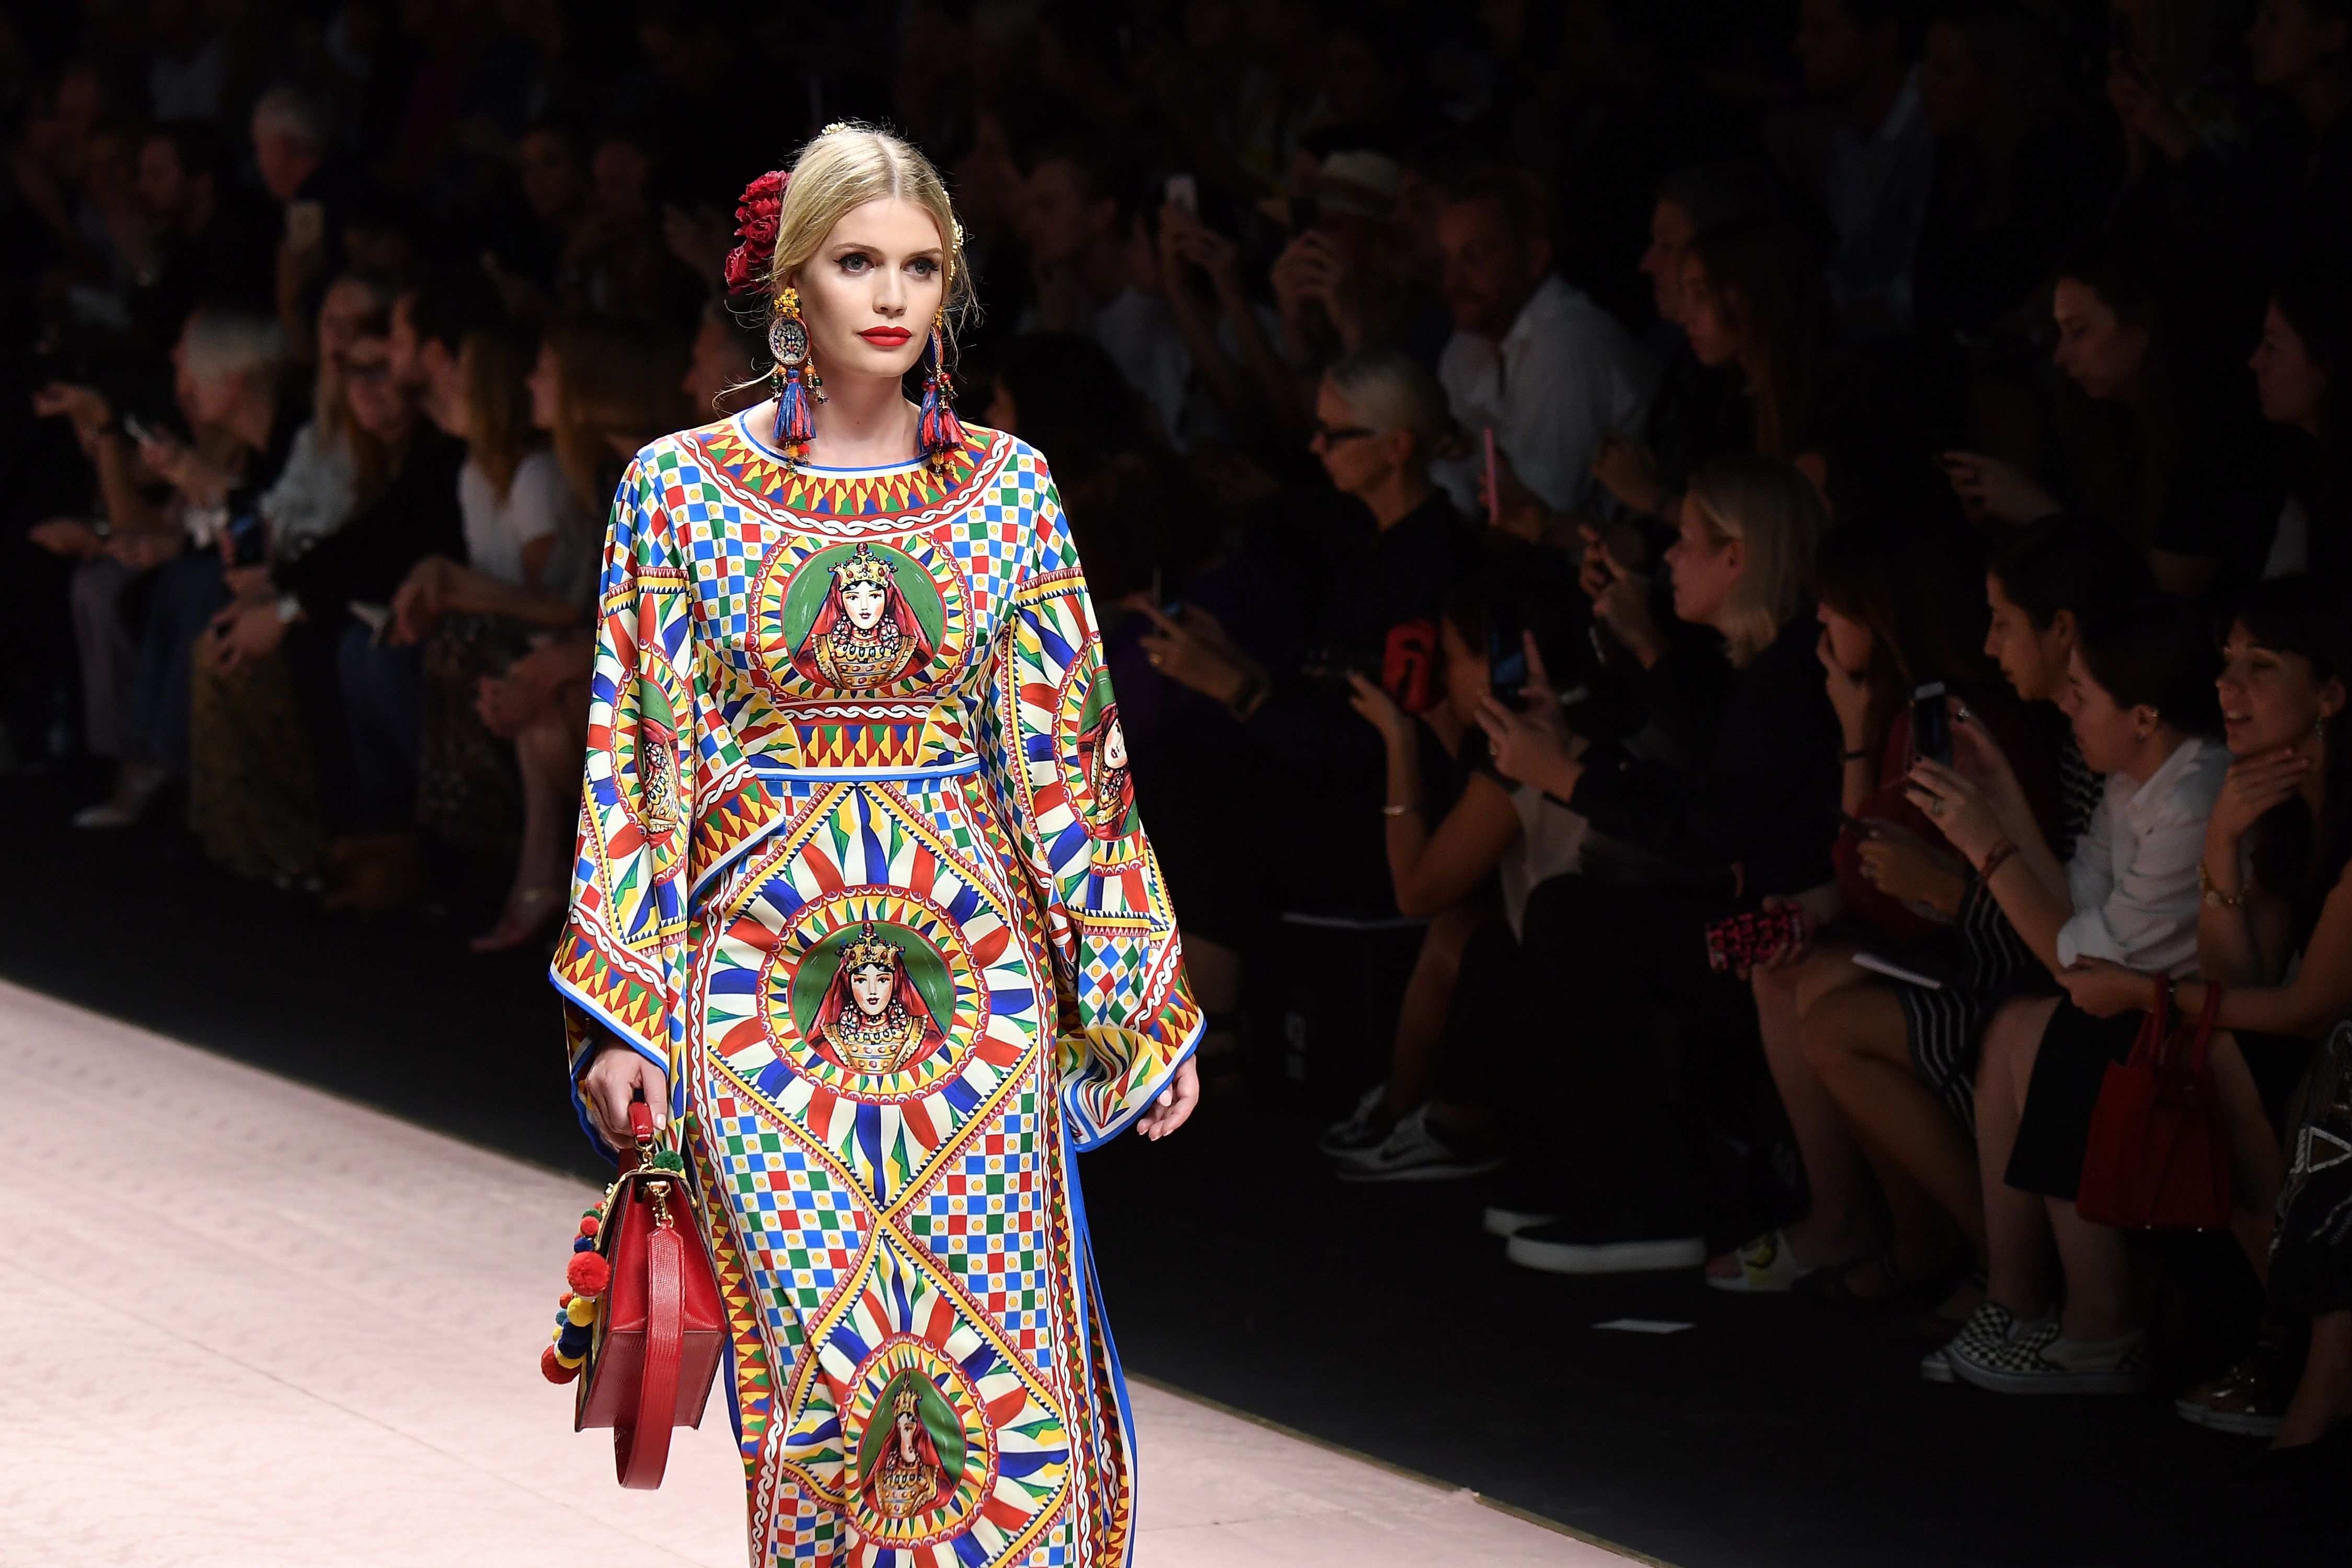 56ada9c0 Lady Kitty Spencer Spring 2019 Dolce & Gabbana Show - Photos of Kitty  Spencer at Fashion Week